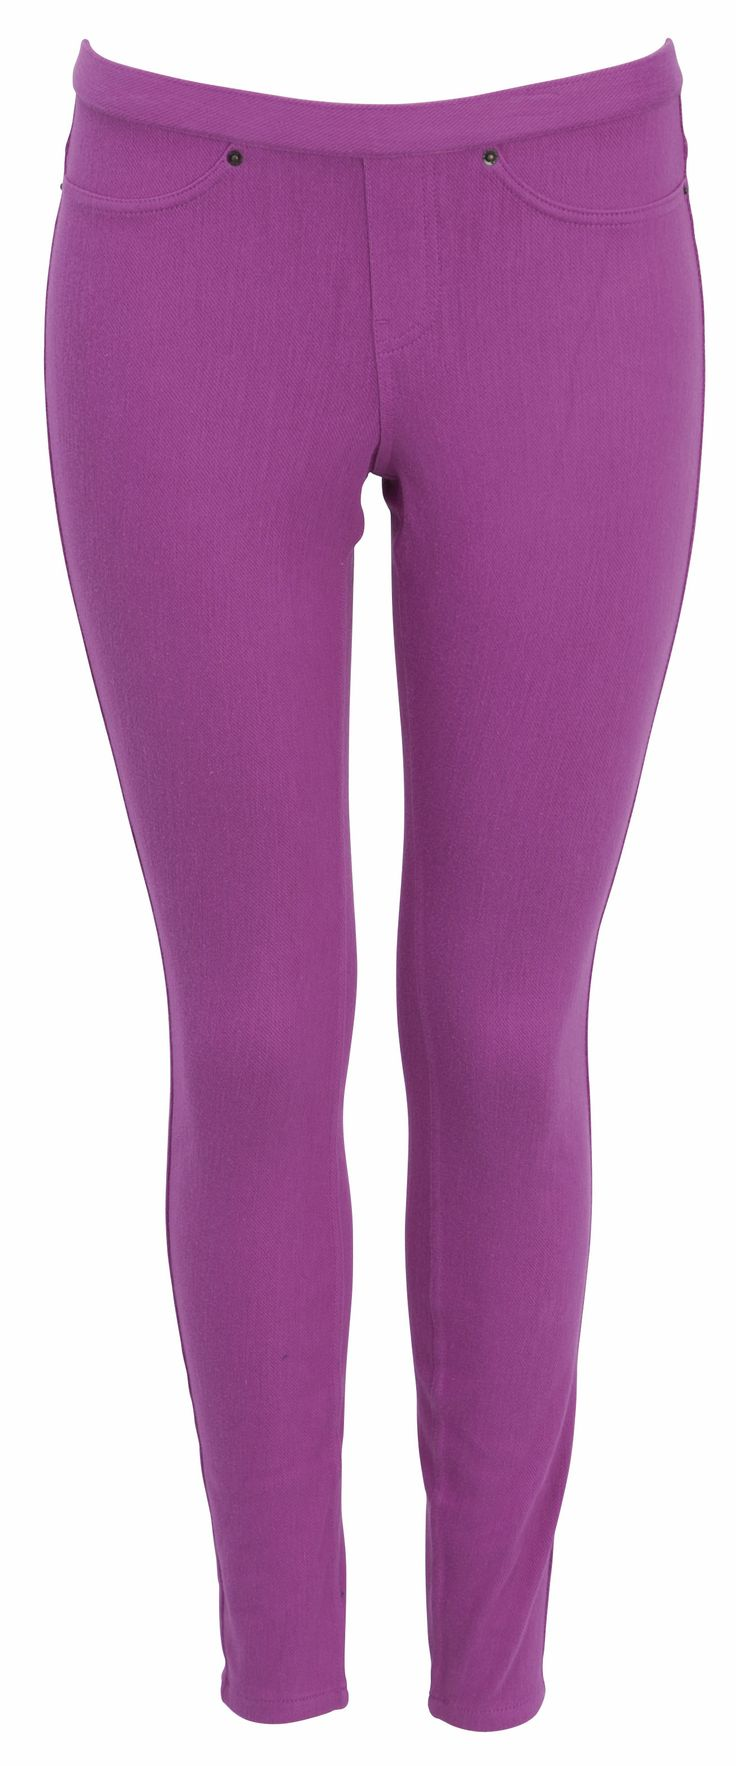 Hue Leggings $49.99 each. These add instant colour and texture to an outfit. Lisa has the fushia pink ones!